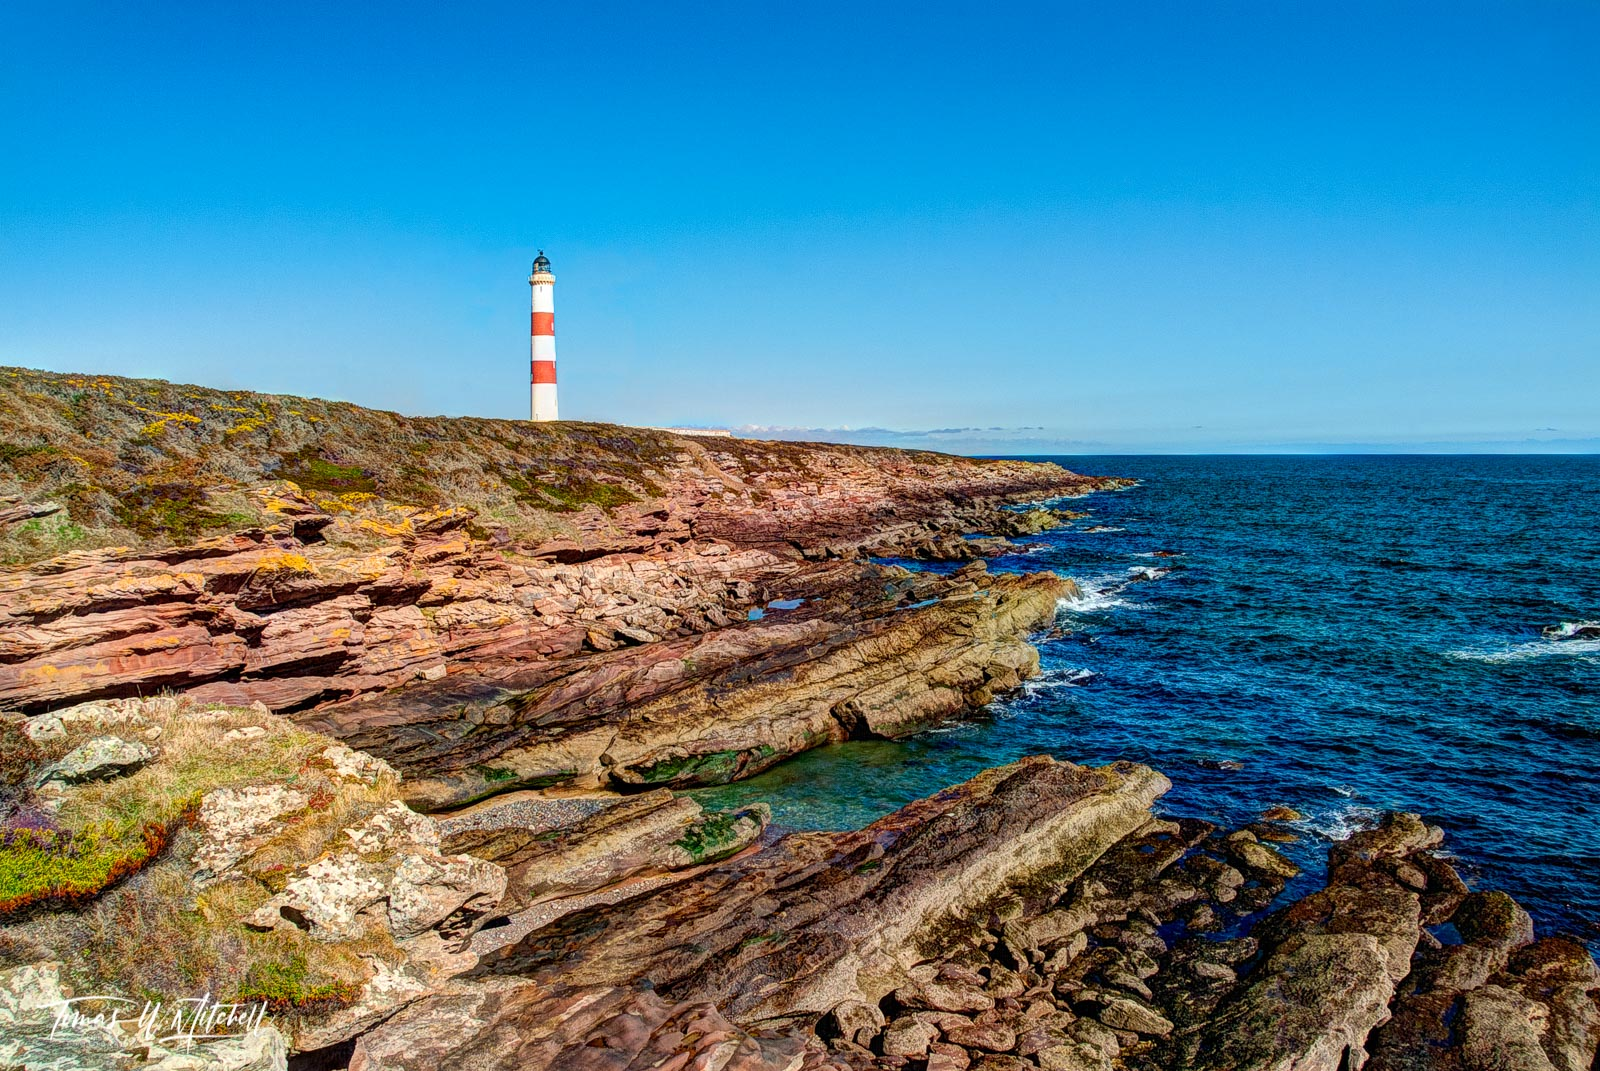 limited edition, museum grade, fine art, prints, tarbat ness, lighthouse, balnagown castle, scotland, sunny day, north sea, coast, peninsula, rugged, coastline, yellow, gorse, vivid, blue sky, blue, o, photo